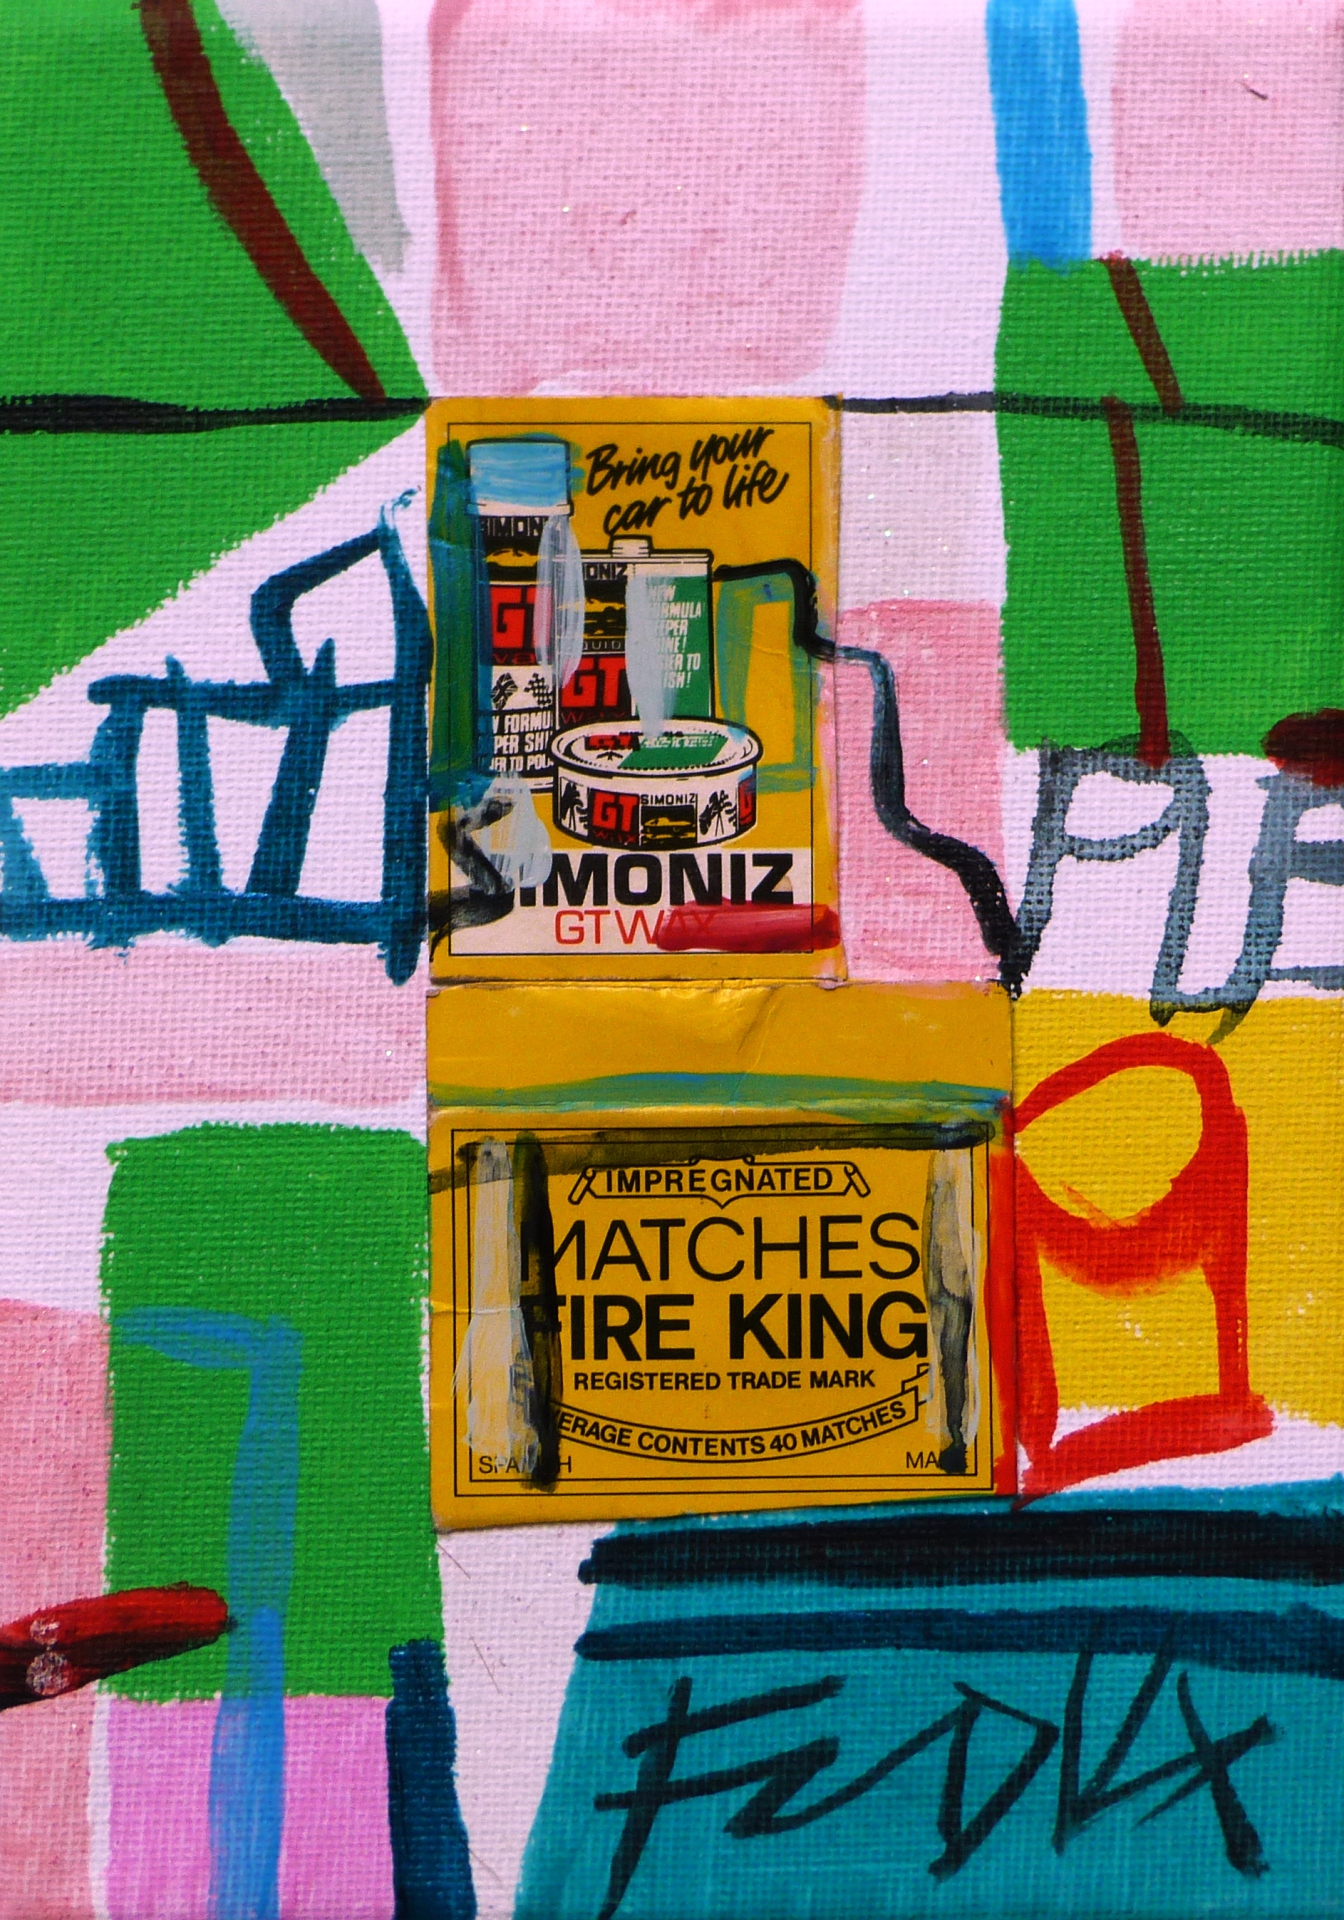 Matchbox Series 24.Fire King Matchbox and Acrylic on Canvas. 12.7x17.7x1.5cm. 2014